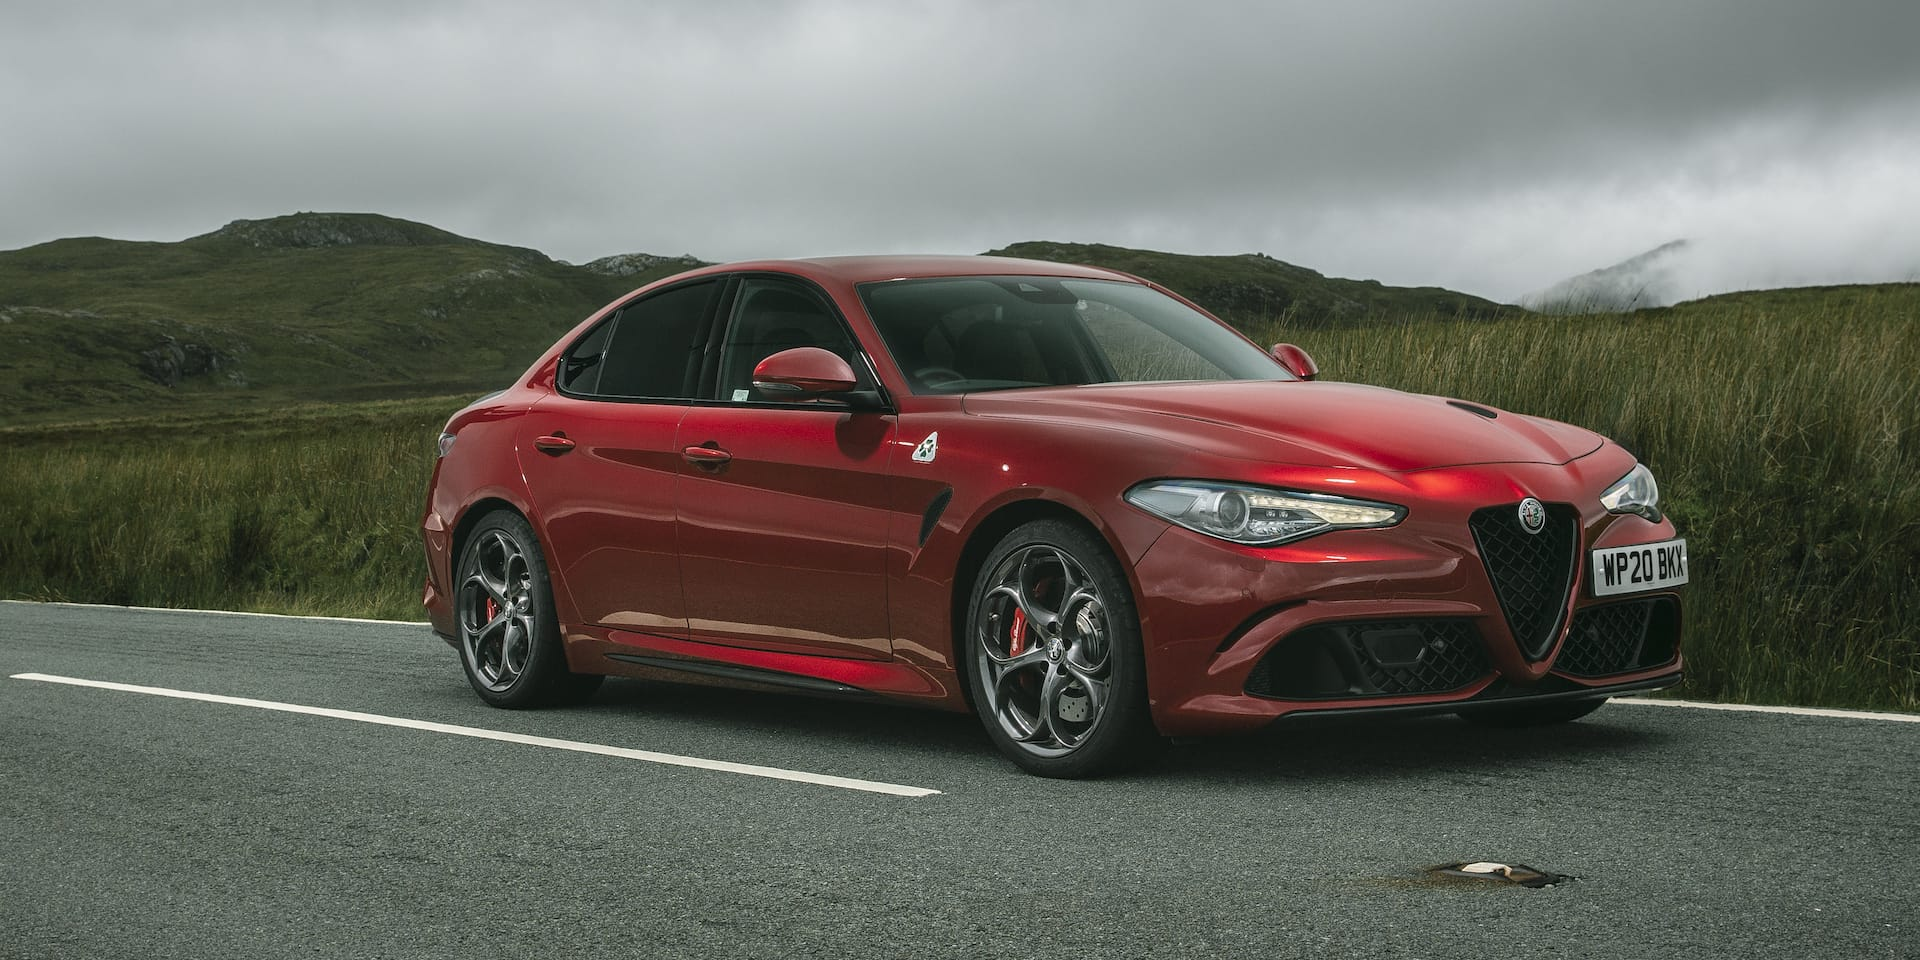 Alfa Romeo Giulia Quadrifoglio (2016 onwards) – Expert Rating